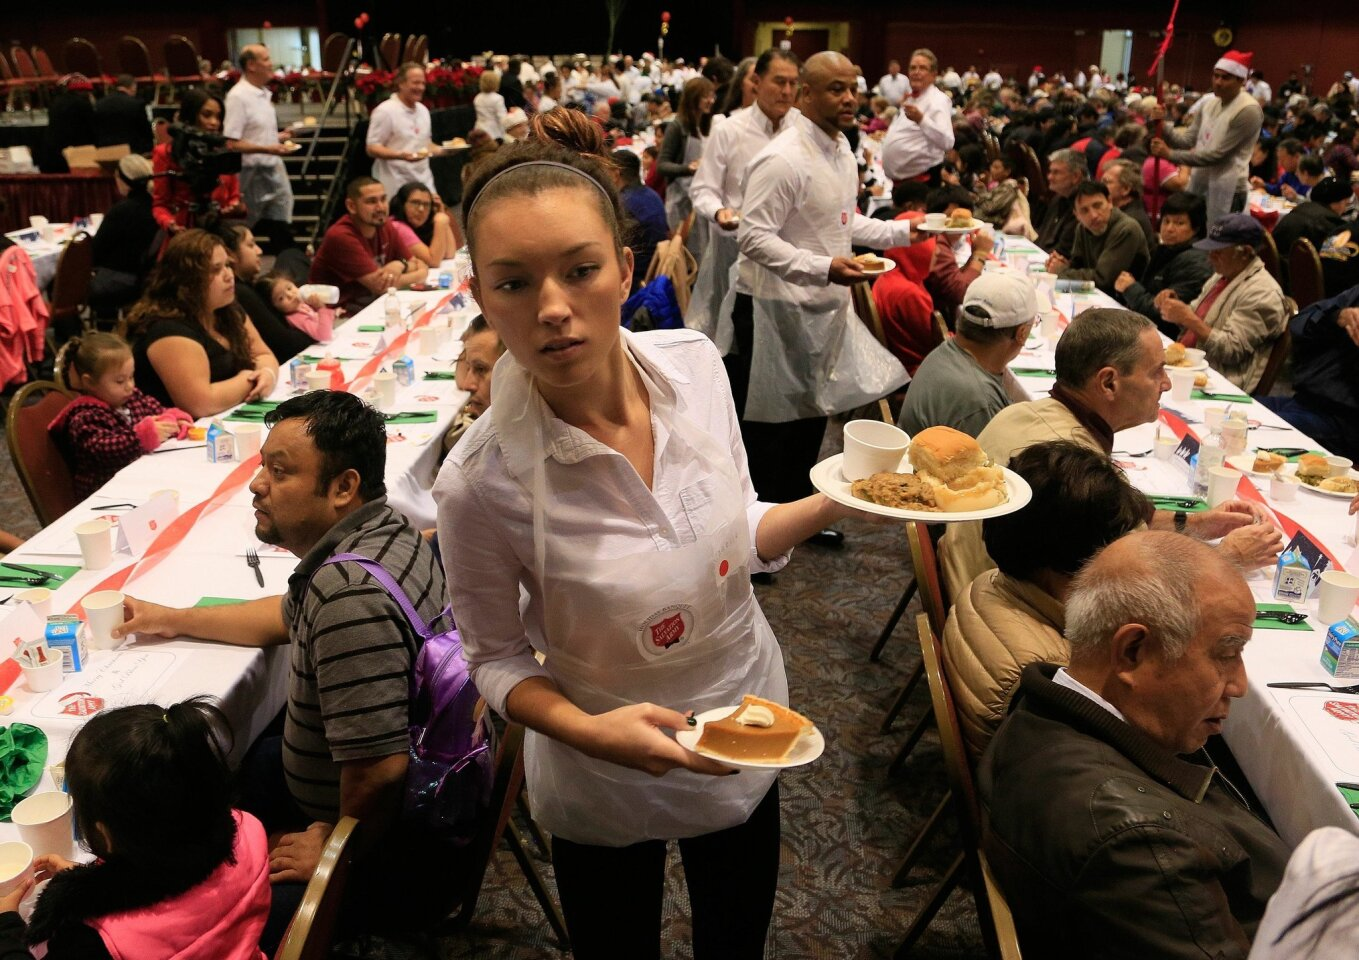 Salvation Army volunteer Janelle Clanton of Santee looks to serve guests at the 32nd annual Christmas Dinner Friday. 1,800 guests and 350 volunteers gathered at Golden Hall in Downtown Friday to enjoy a warm holiday meal.